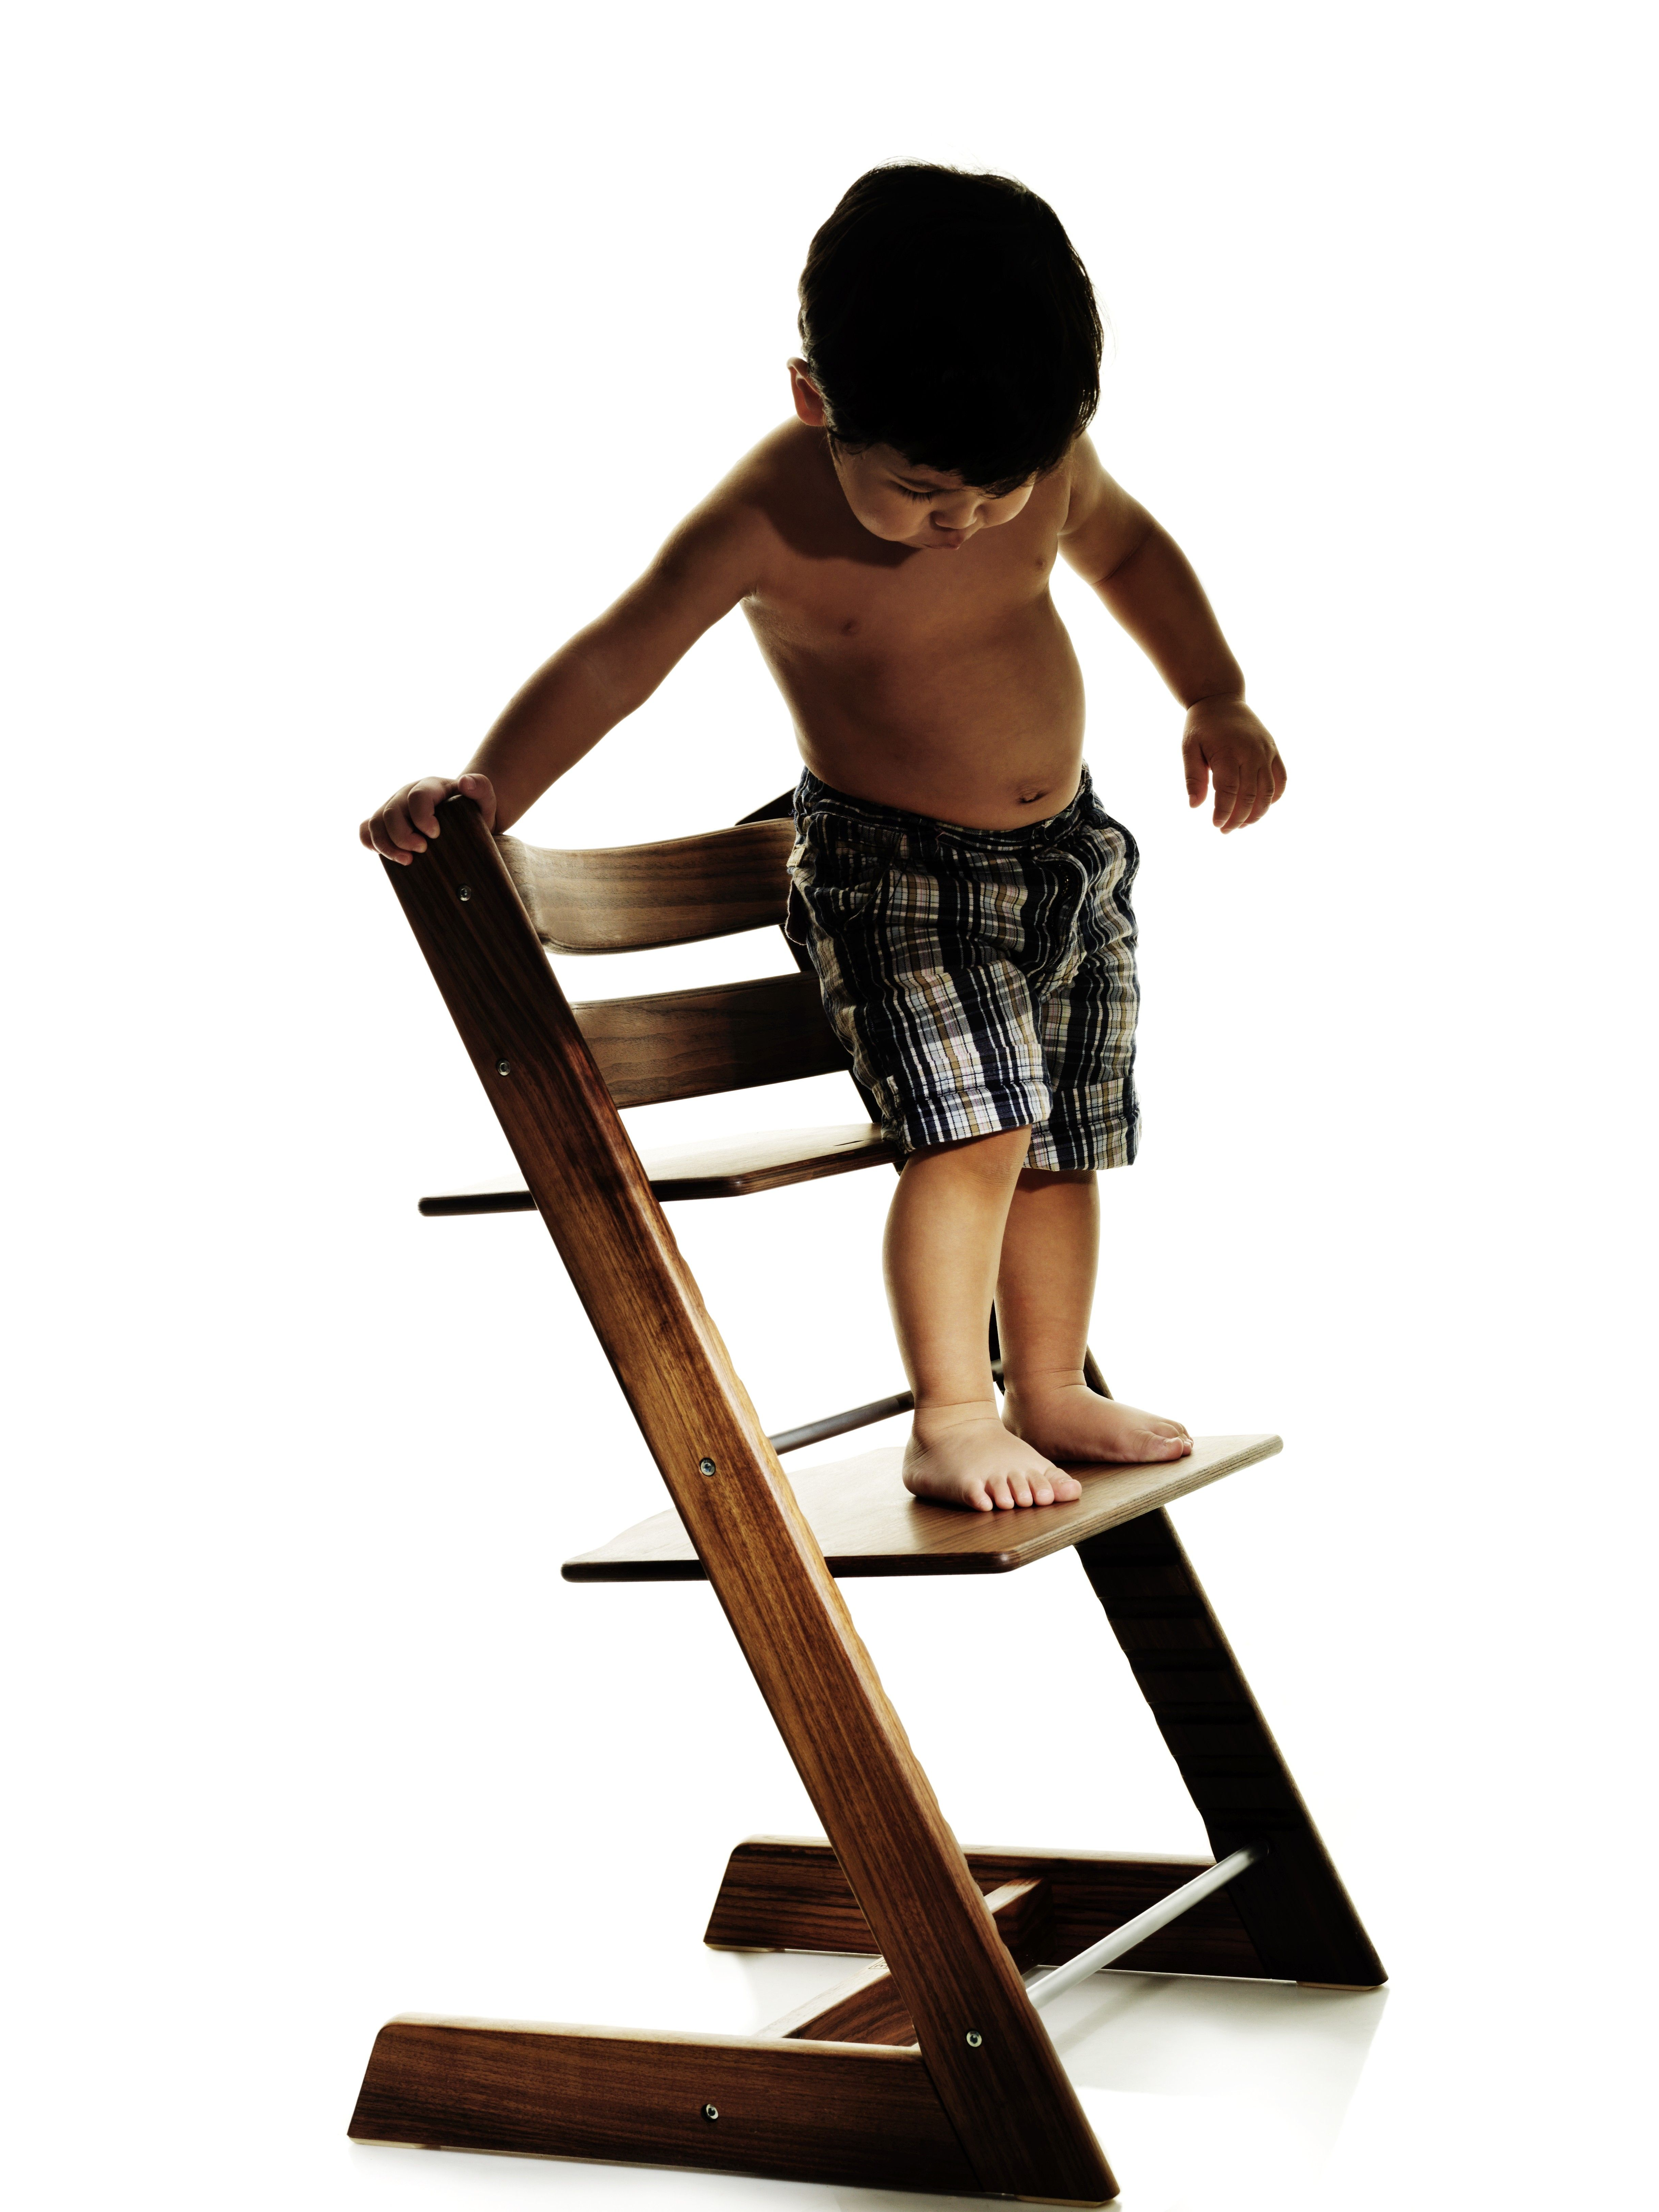 Stokke high chair blue - Elegant Tripp Trapp Made From Solid American Walnut With Oiled Finish A Family Heirloom In